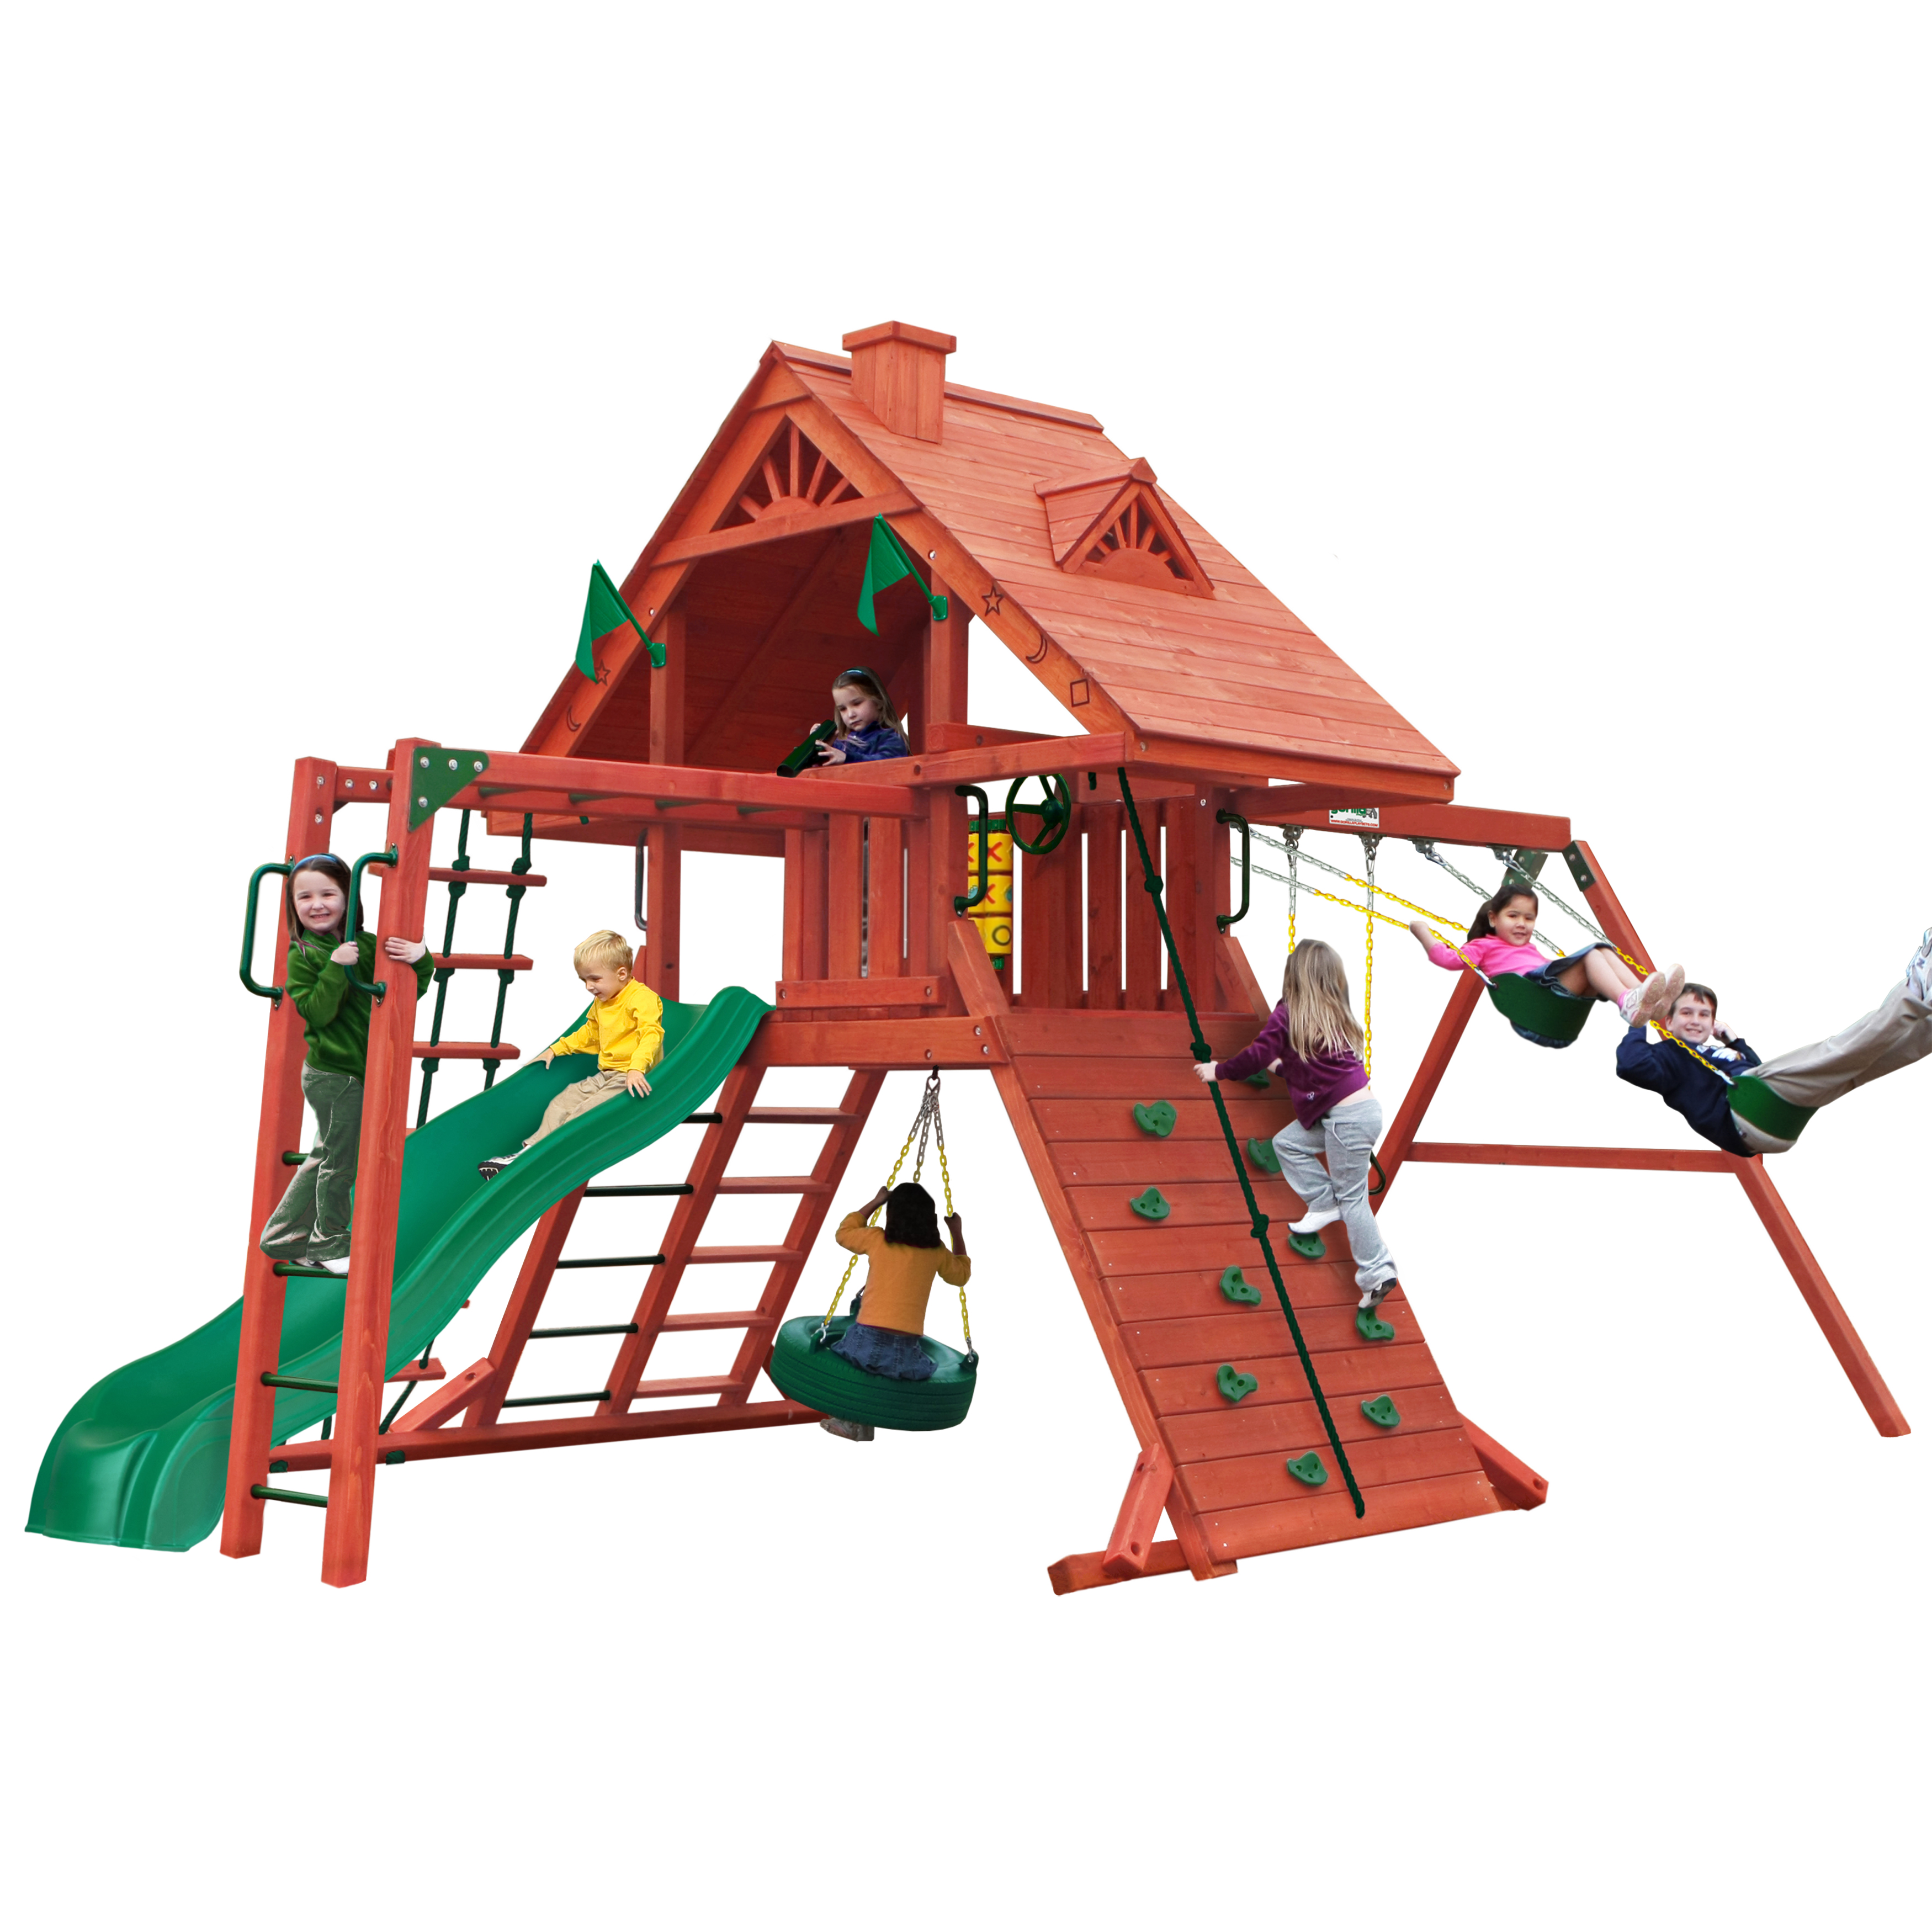 Gorilla Playsets Sun Palace Ii Wooden Swing Set With Rope Ladder